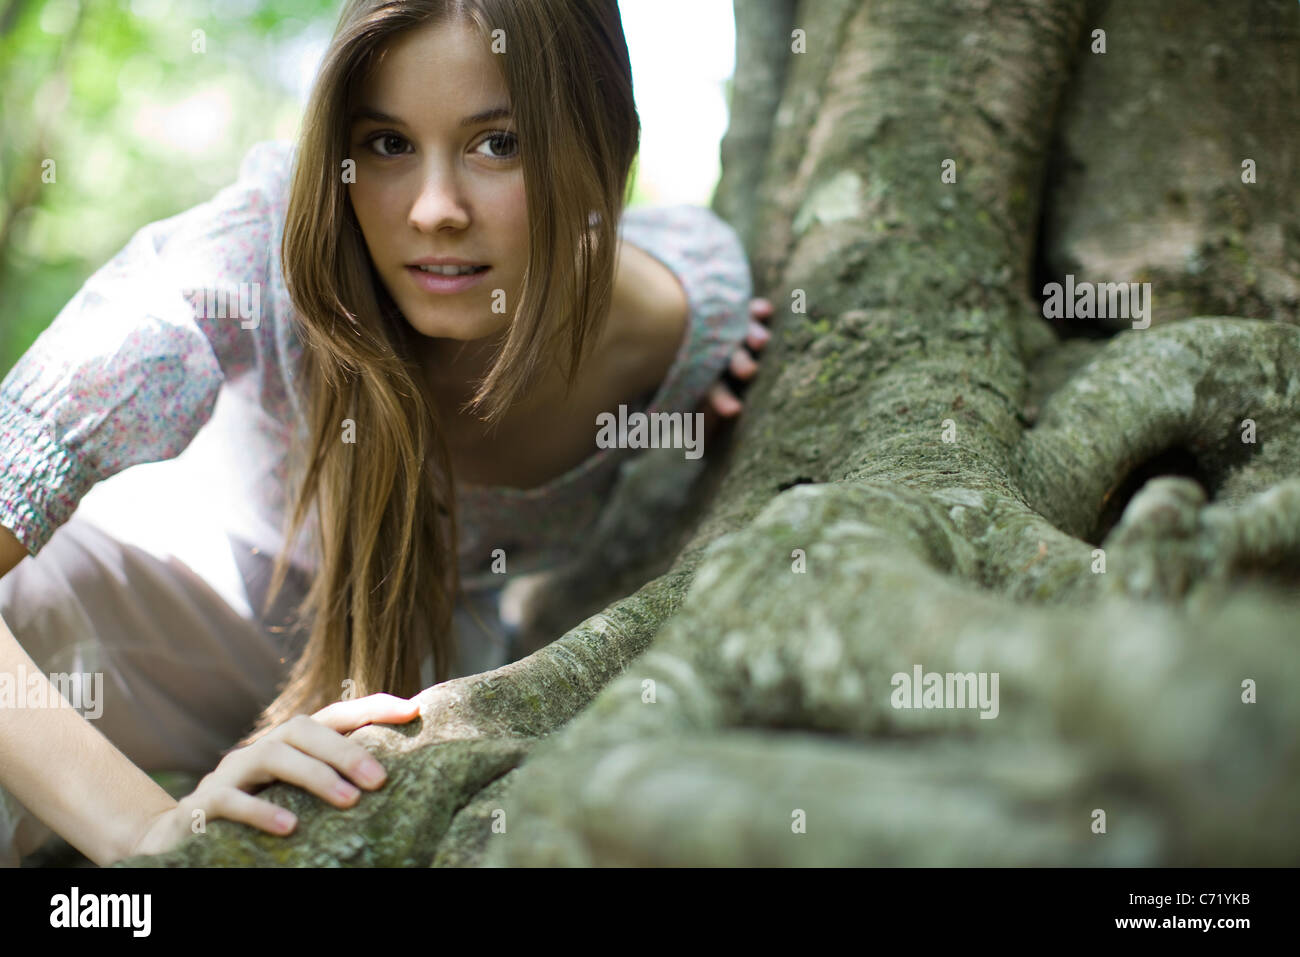 Young woman leaning on roots of tree - Stock Image